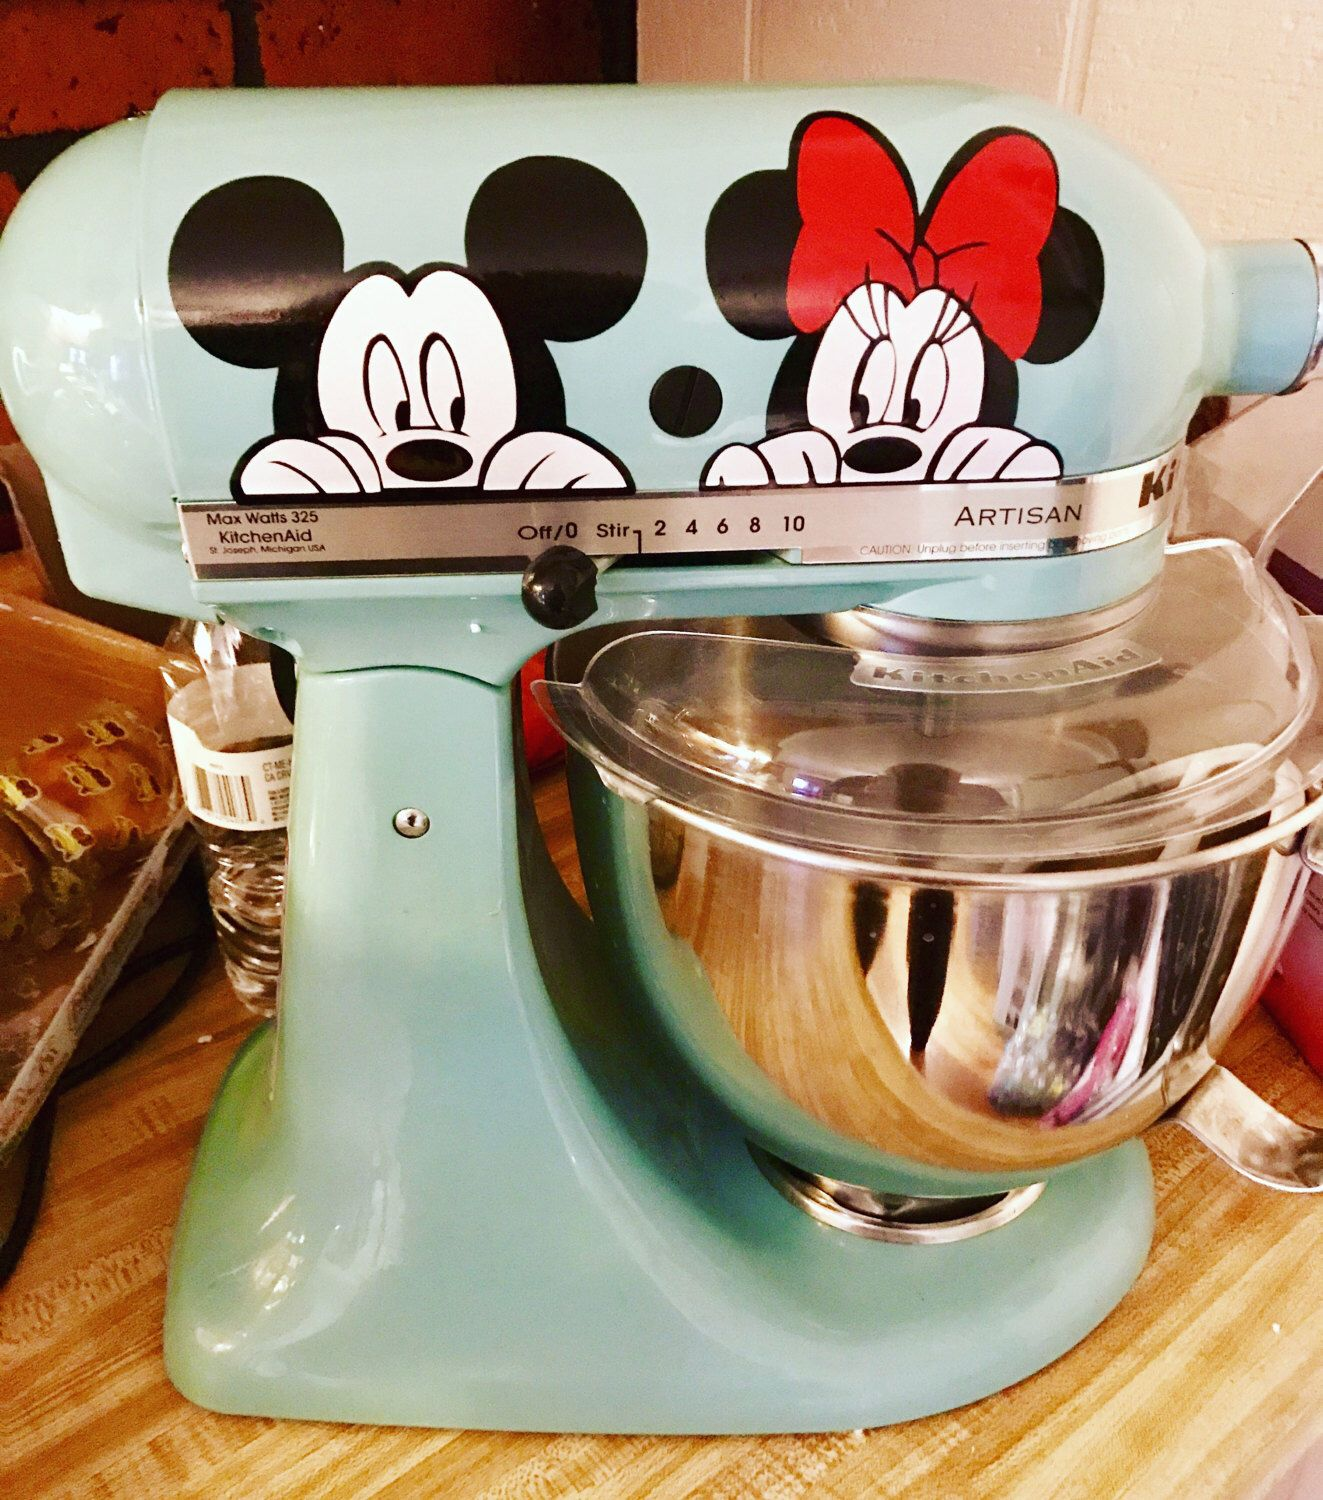 Mixer Decal, Kitchen Aid Decal, Peeping Mickey Decal